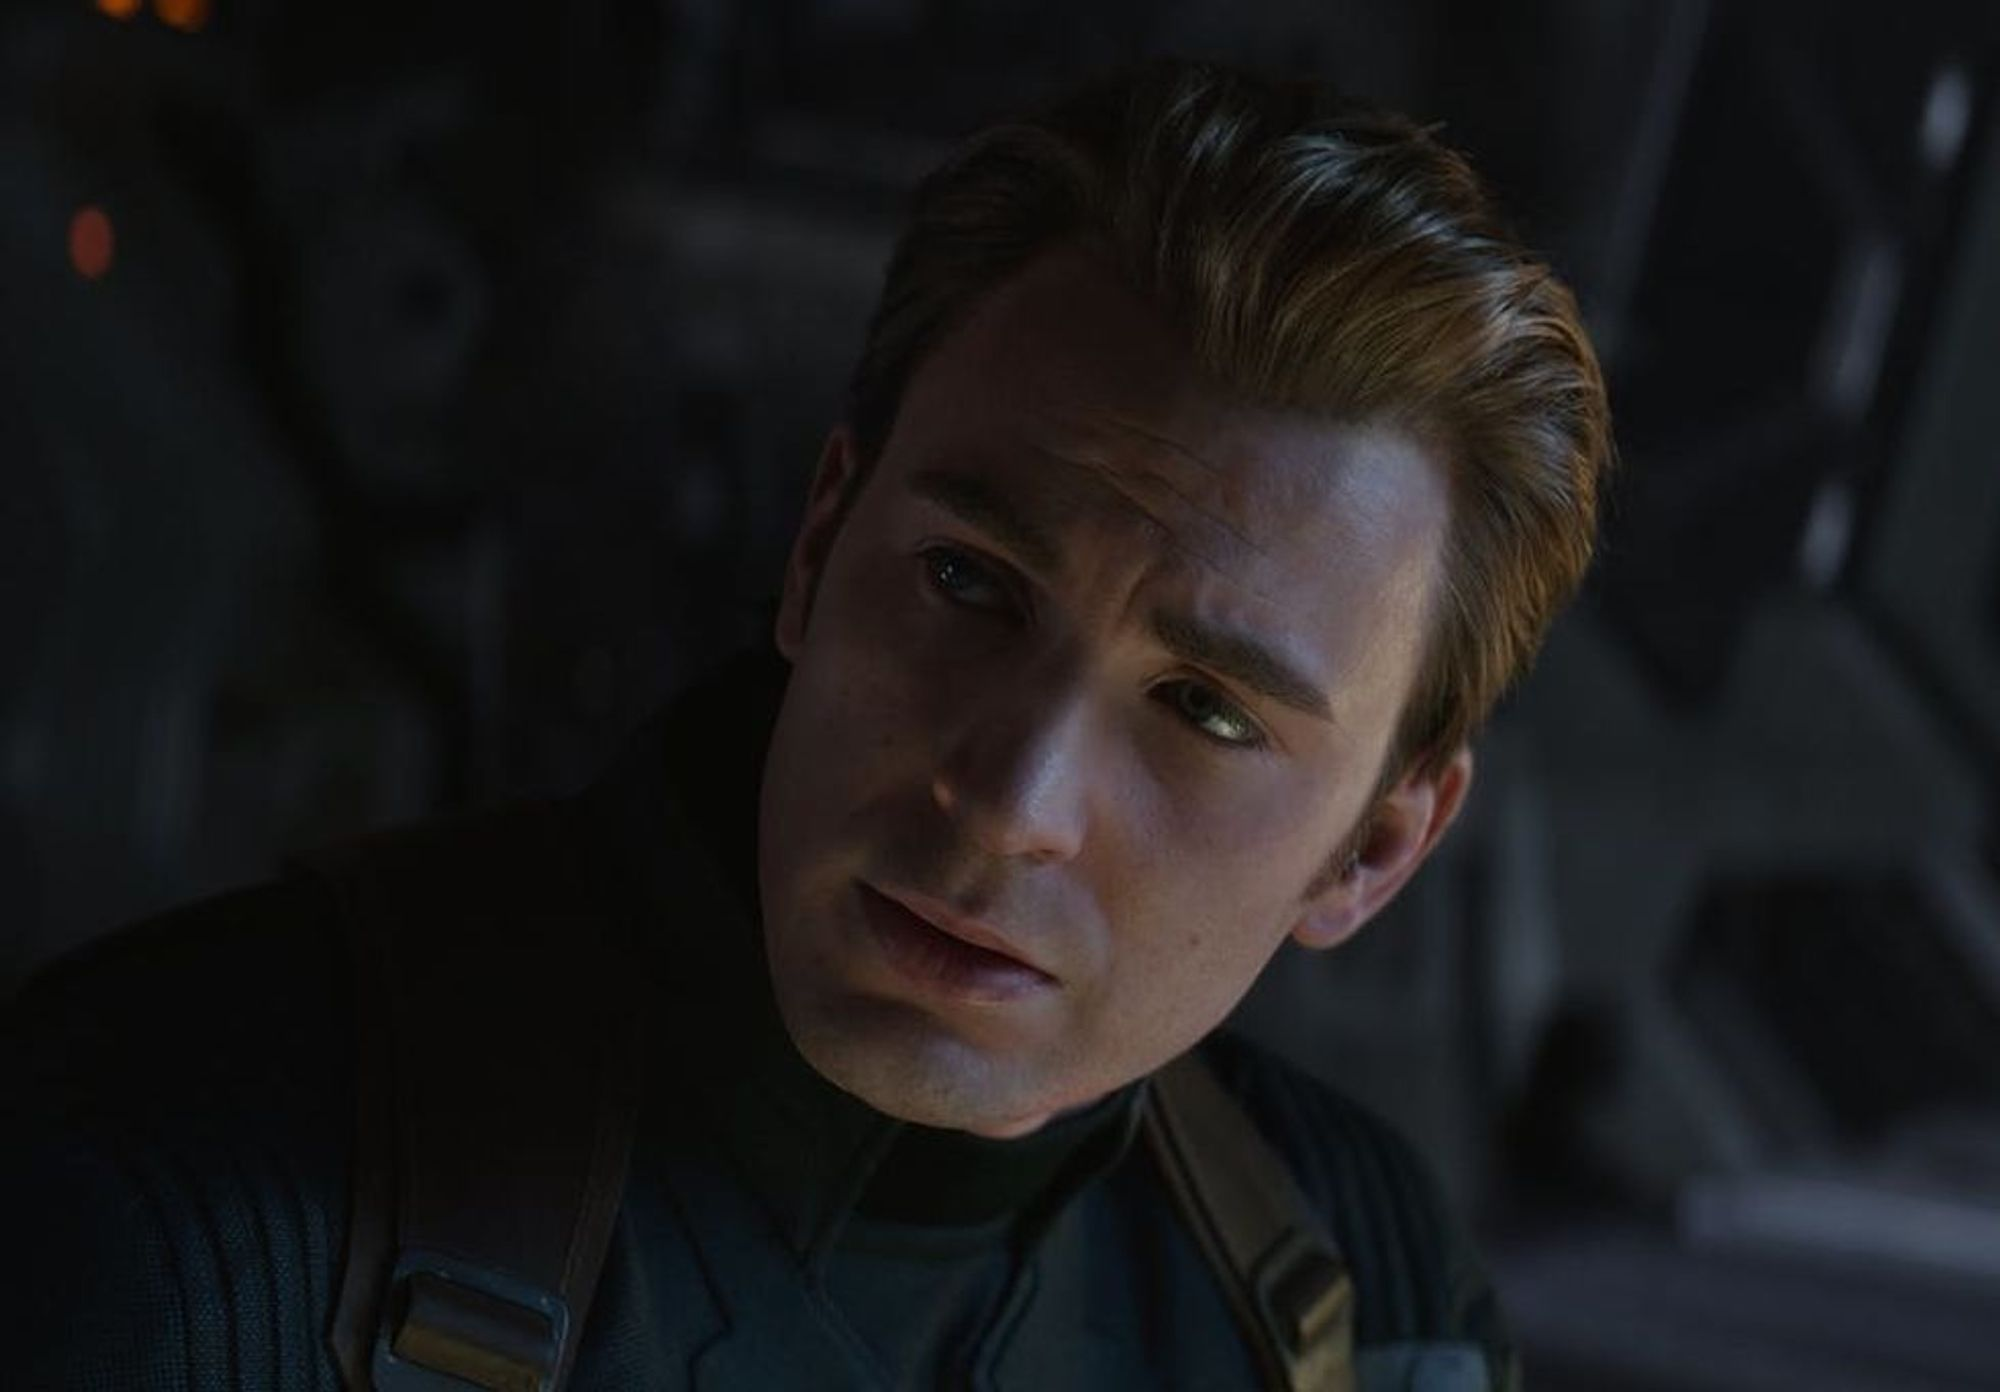 Every Fan Needs to Read This 'Avengers: Endgame' Letter About Spoilers